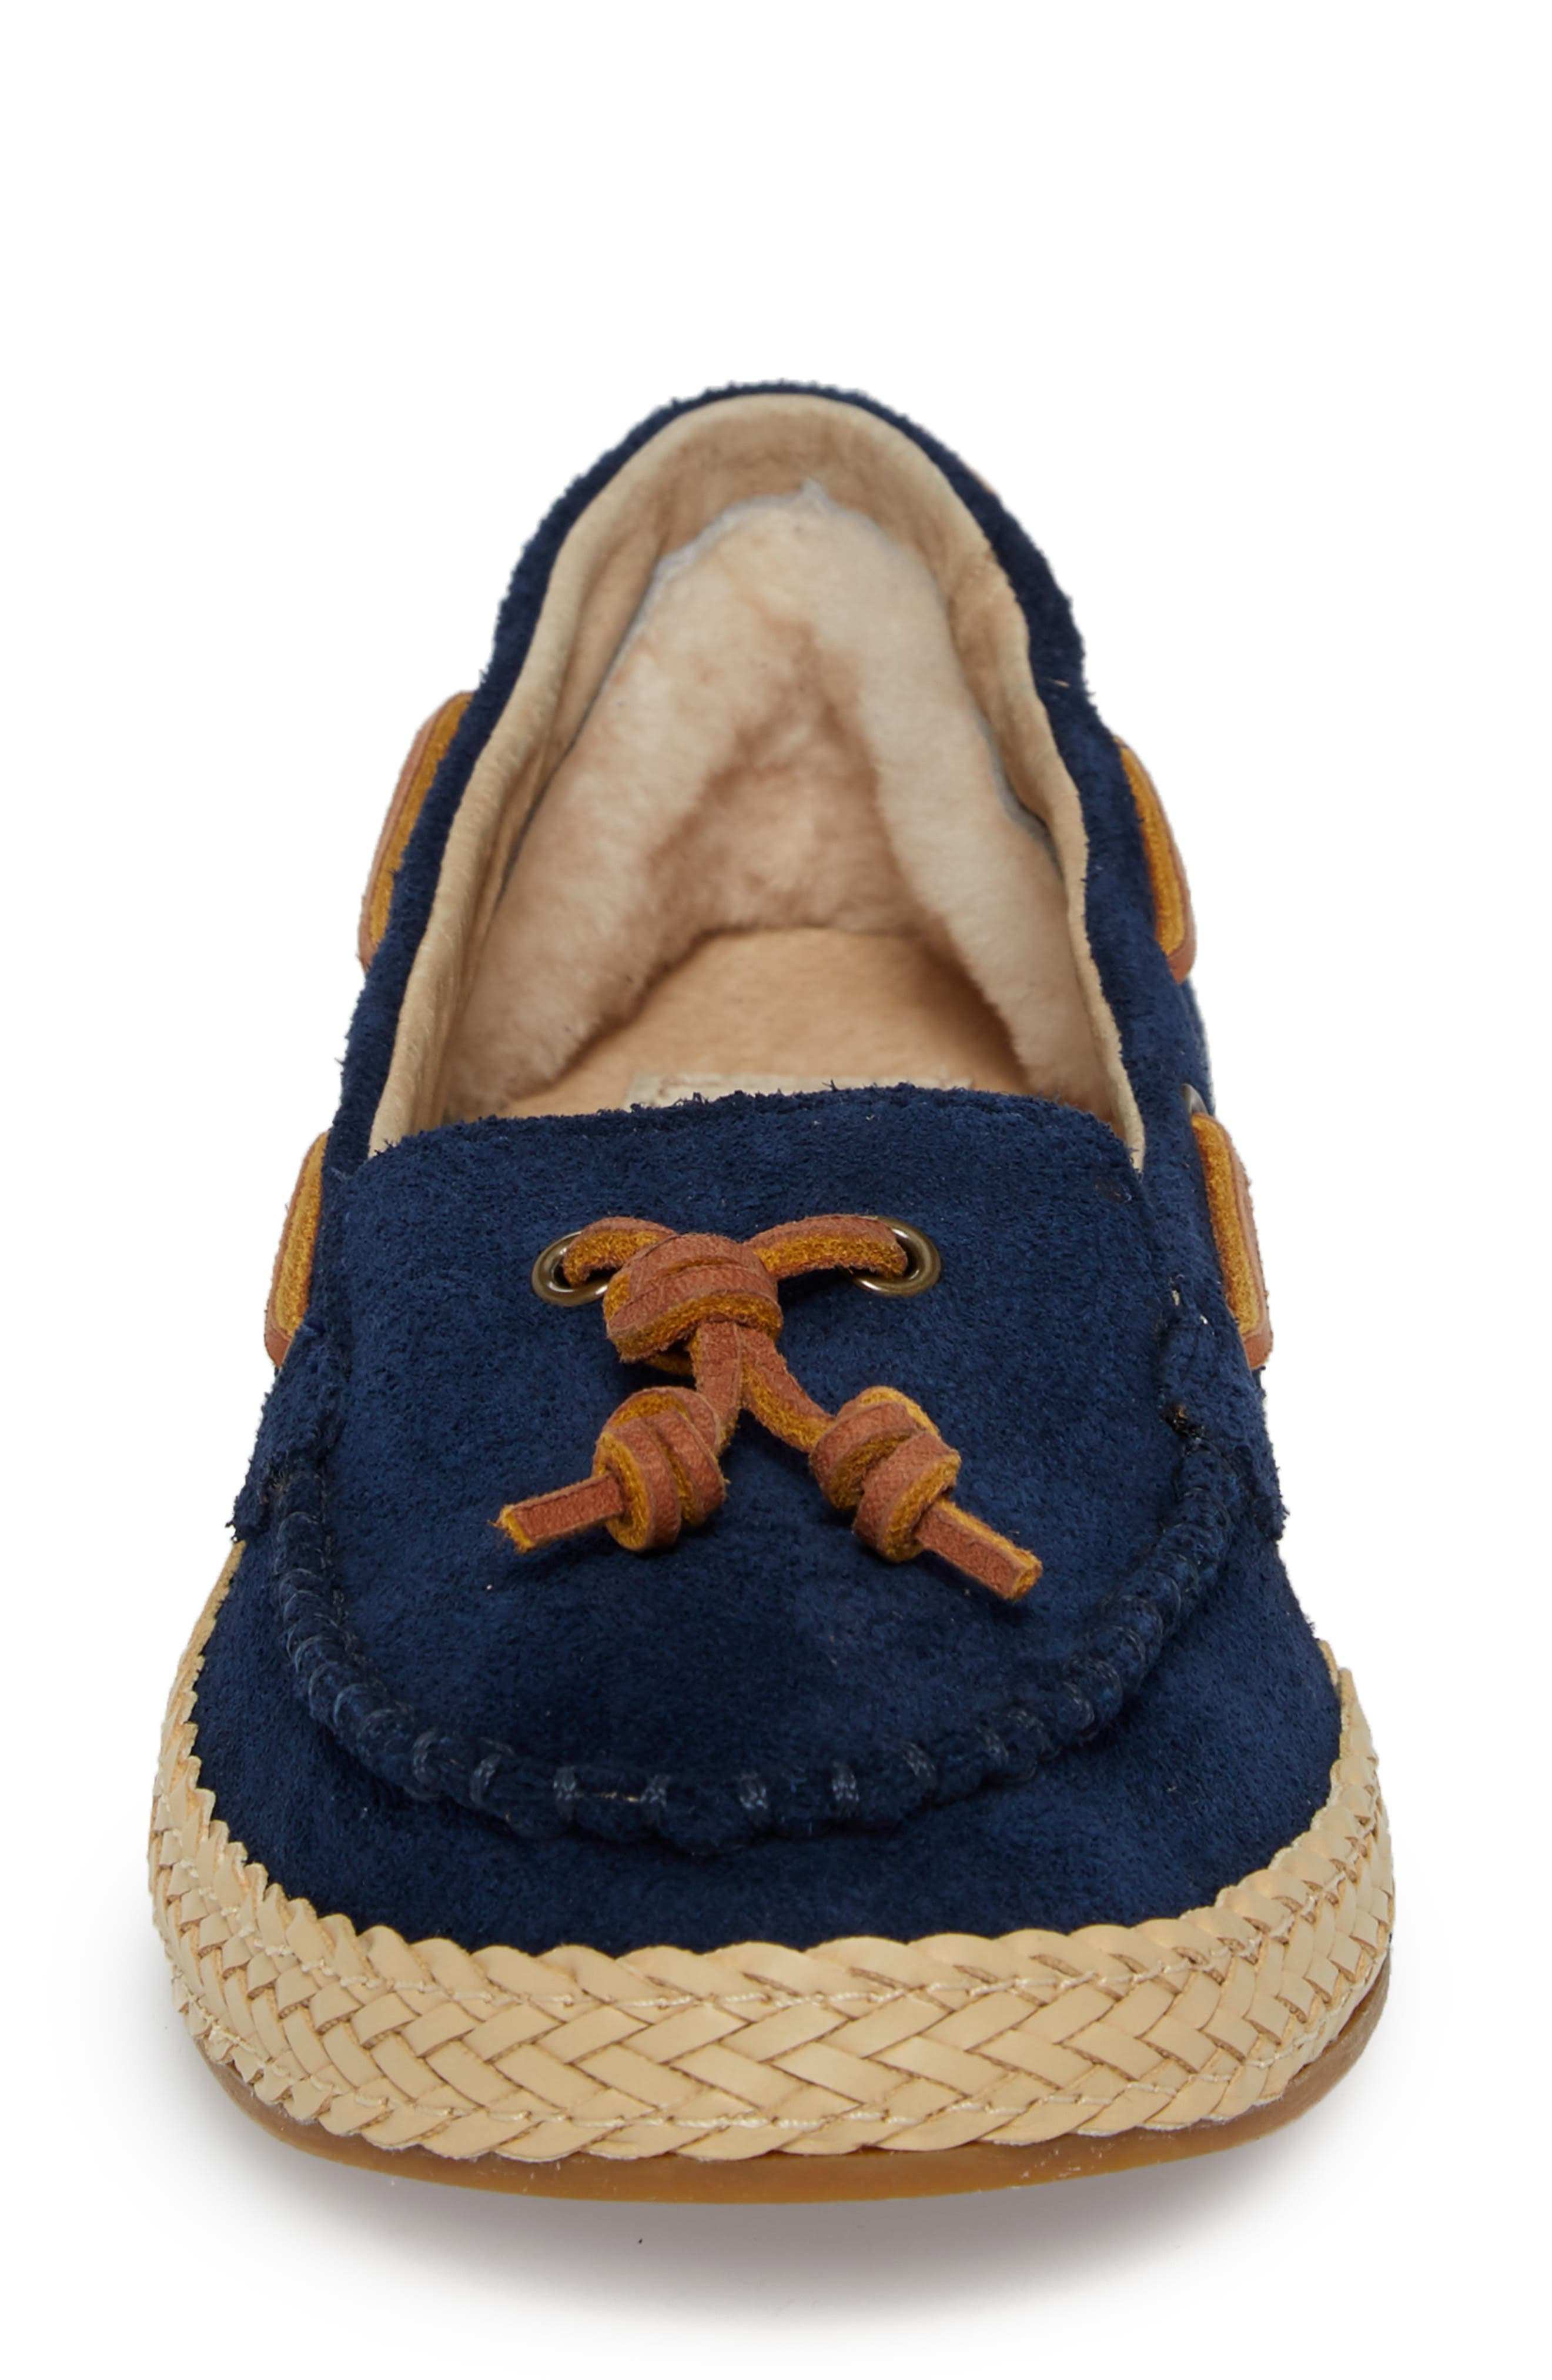 Channtal Loafer,                             Alternate thumbnail 4, color,                             Navy Suede